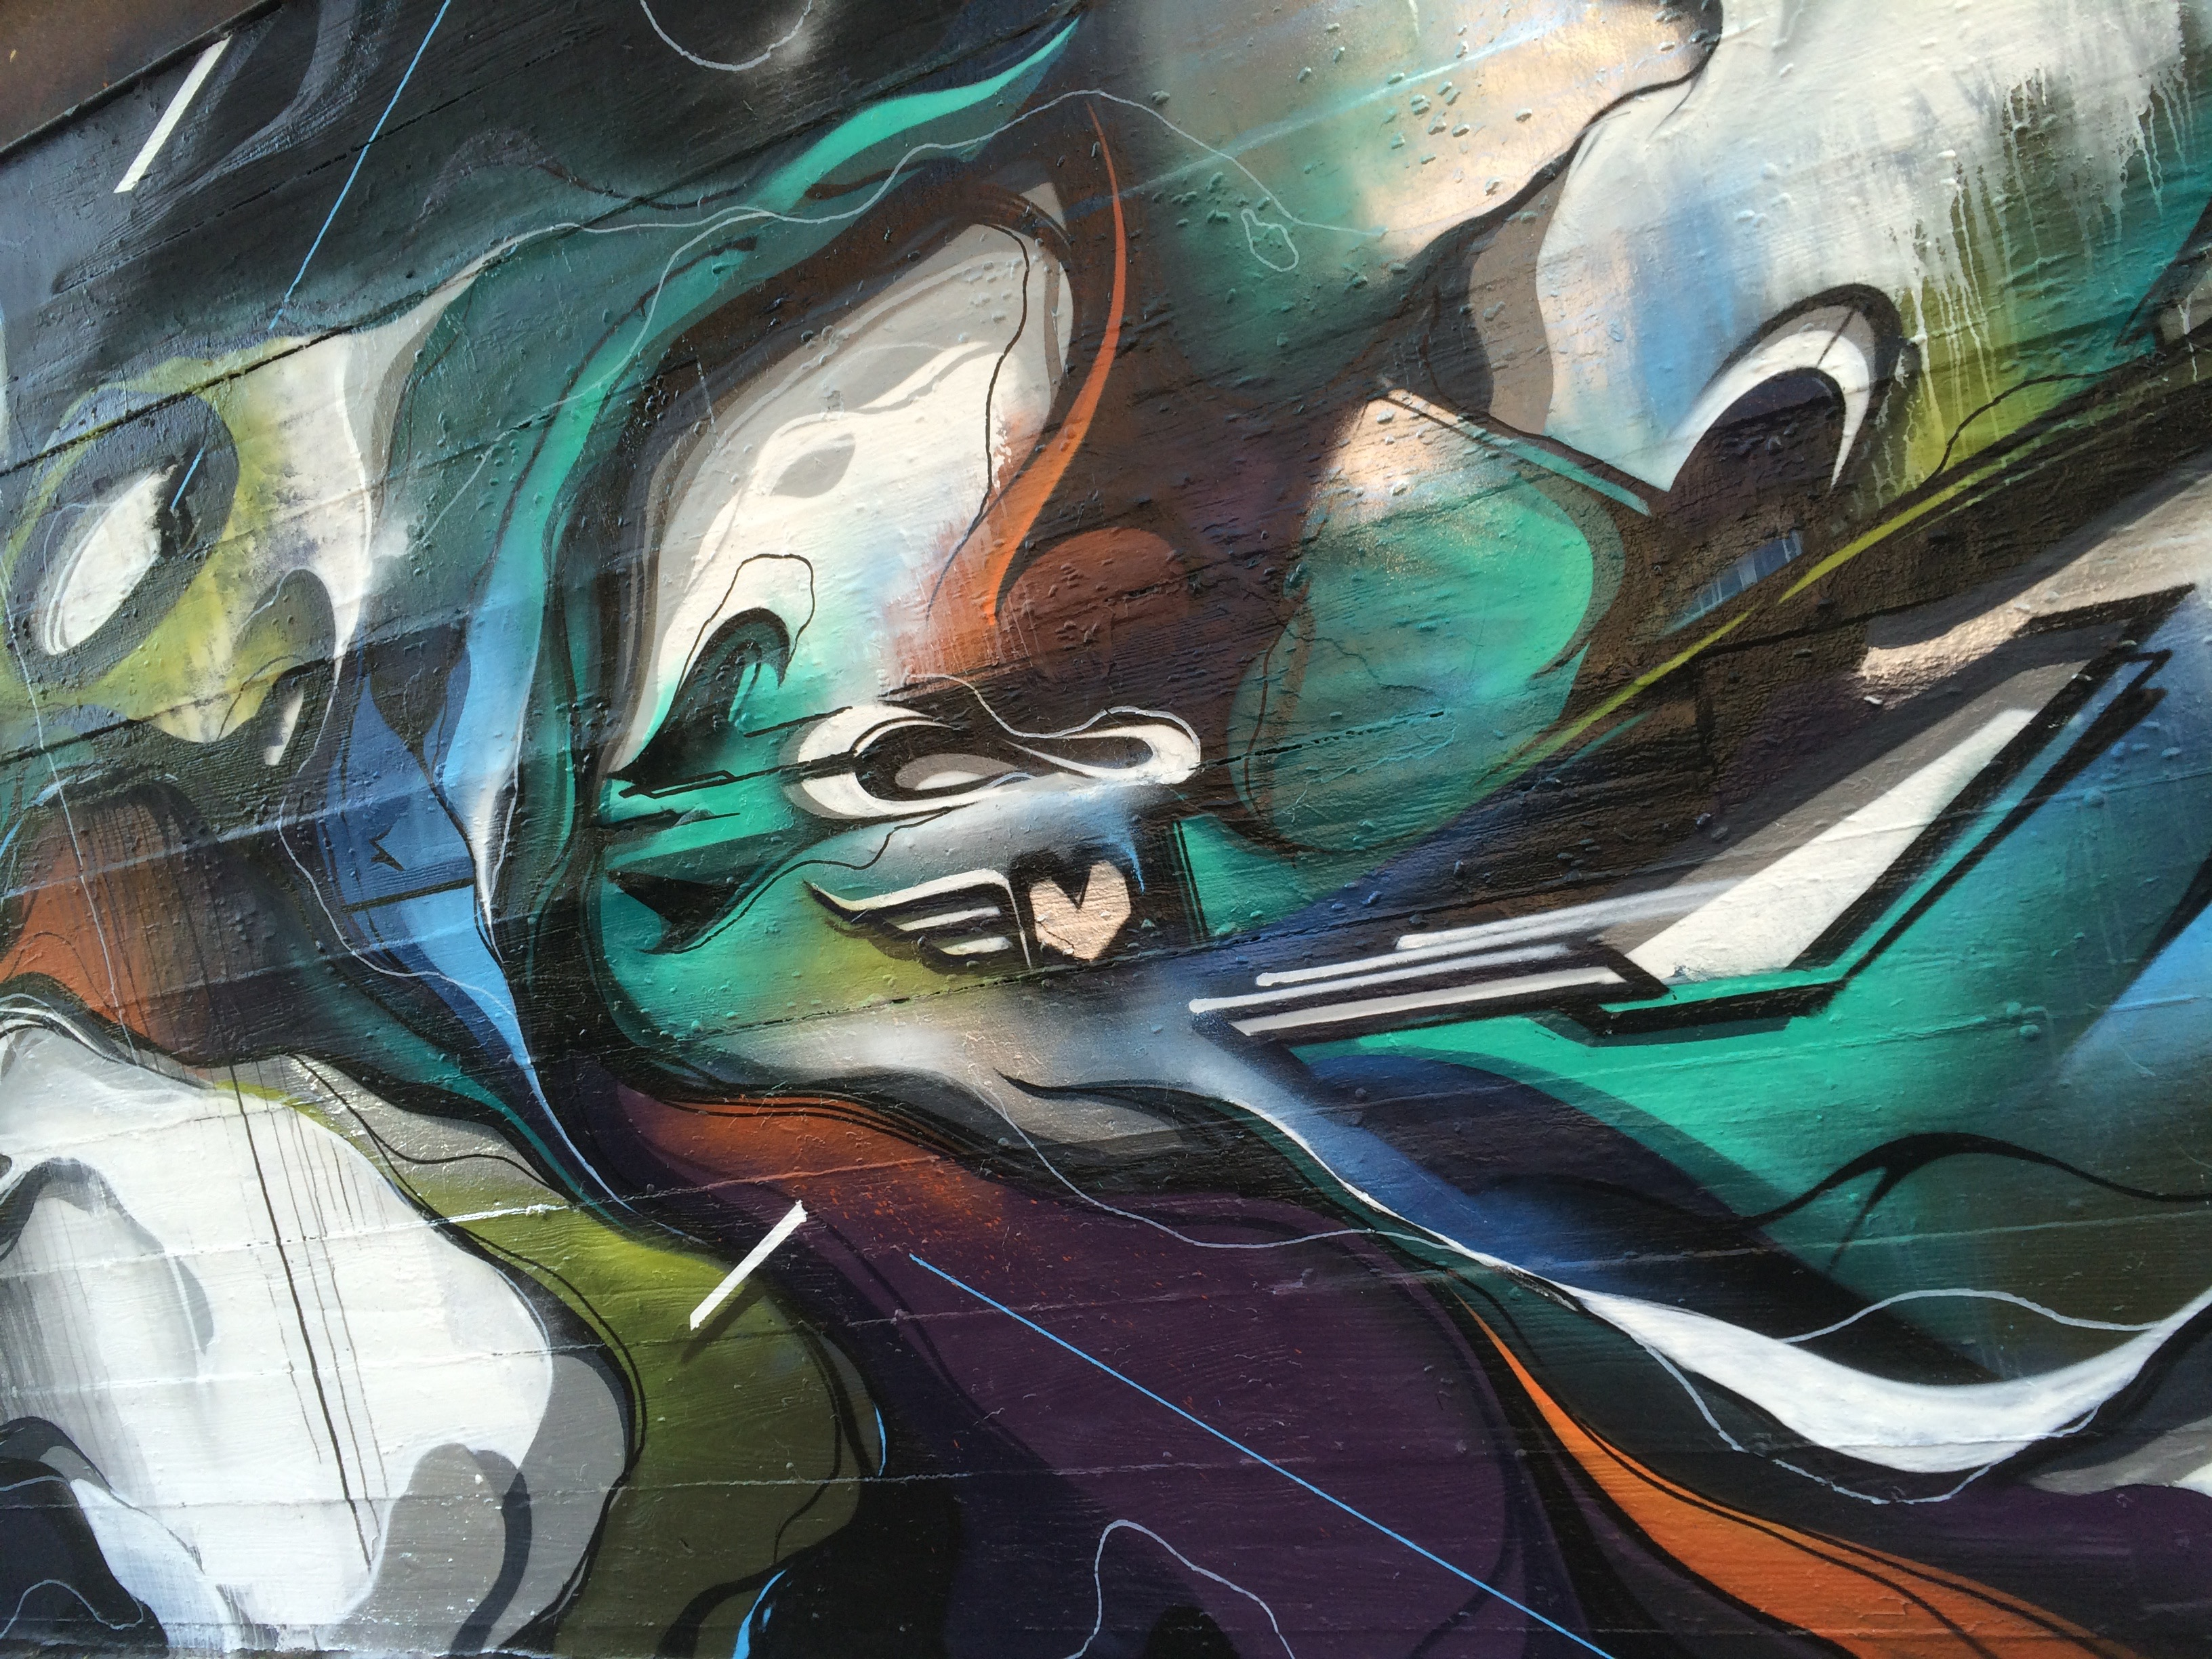 A work by Does - Chicago usa mural detail 5